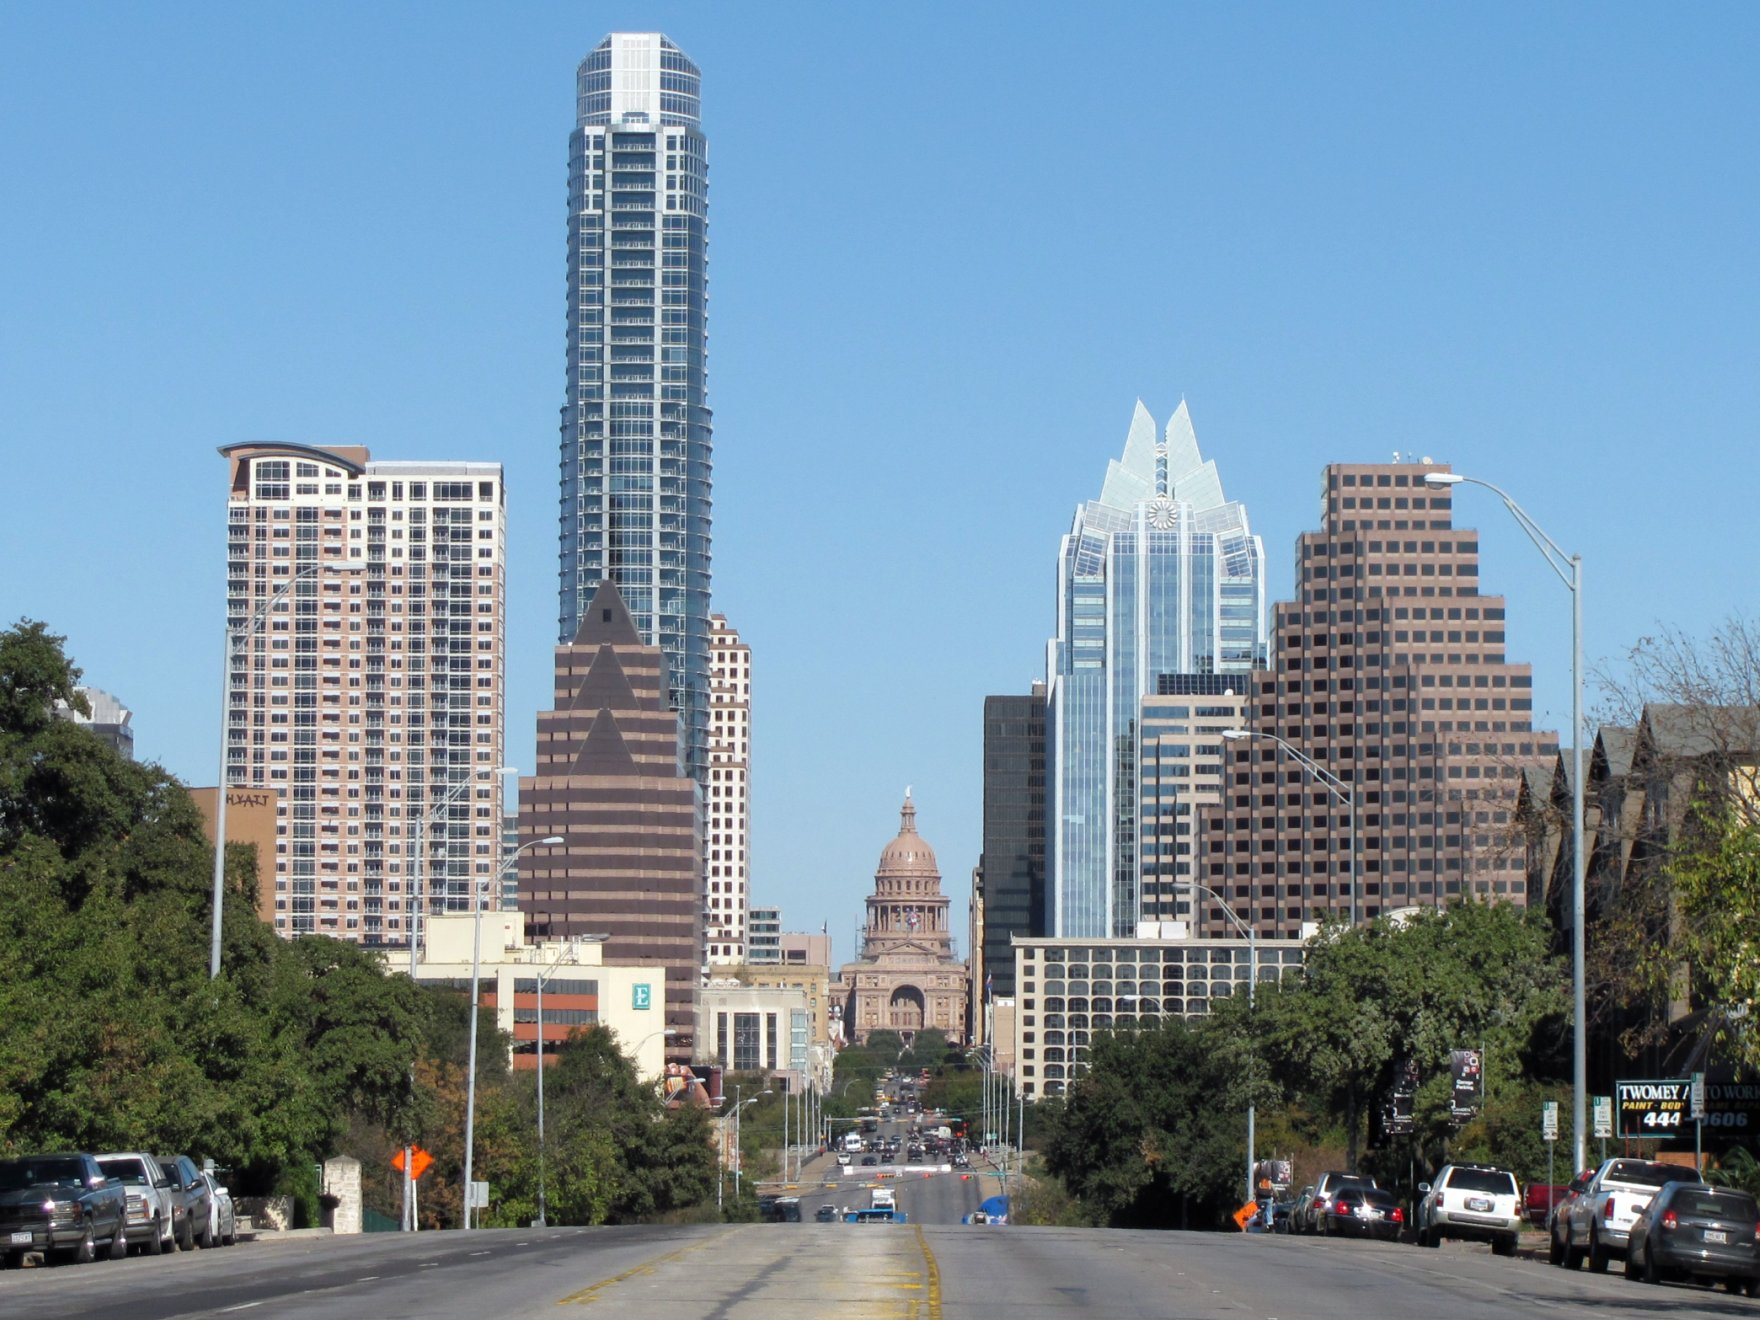 image of downtown austin - street and buildings